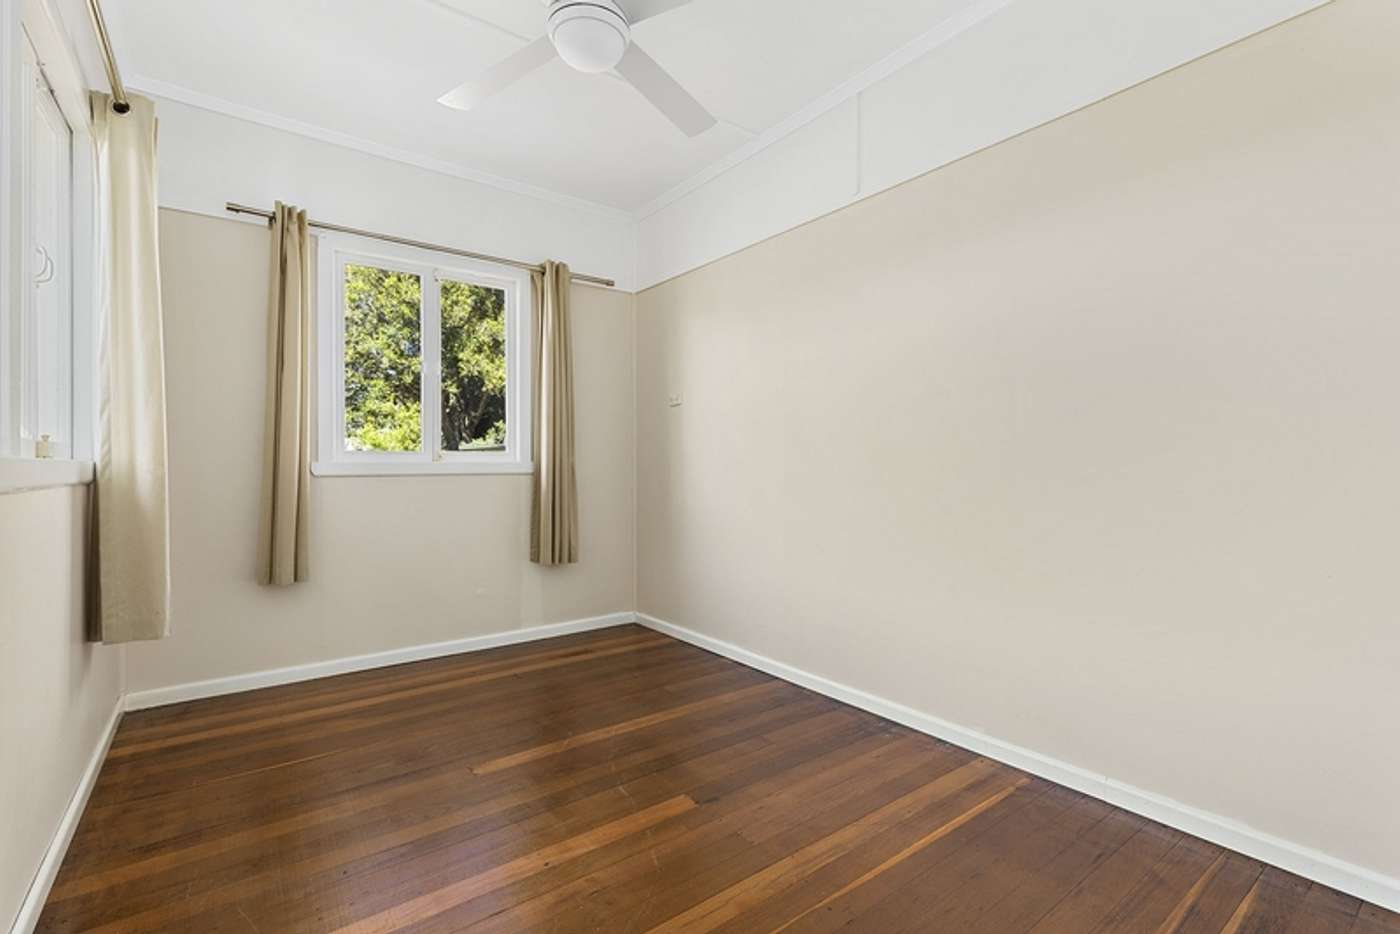 Sixth view of Homely house listing, 158 Beams Road, Zillmere QLD 4034